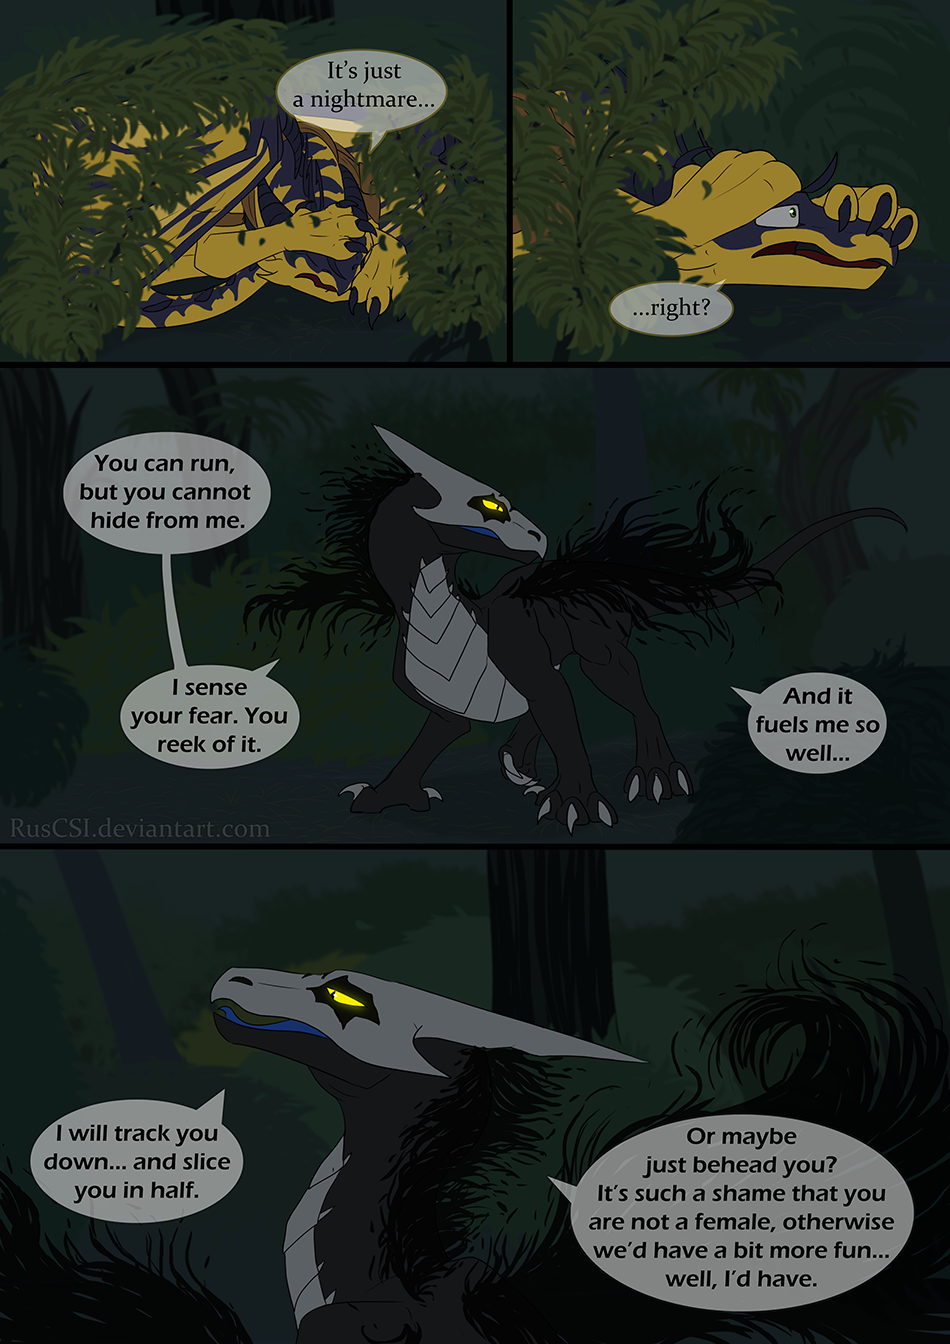 Courage of the cowardly dragon - page 41